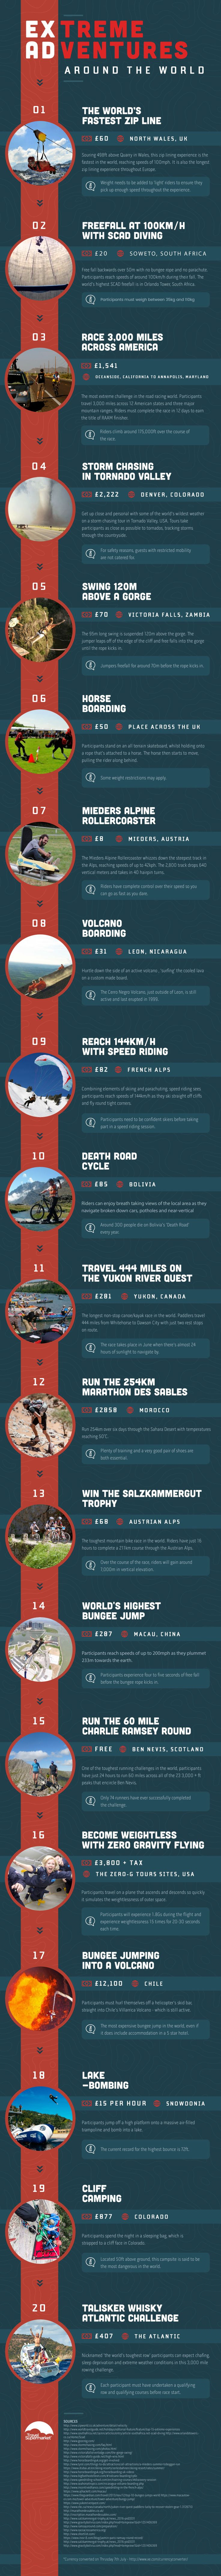 The World's Most Extreme Adventures - How Extreme Are You? #infographic #Travel…